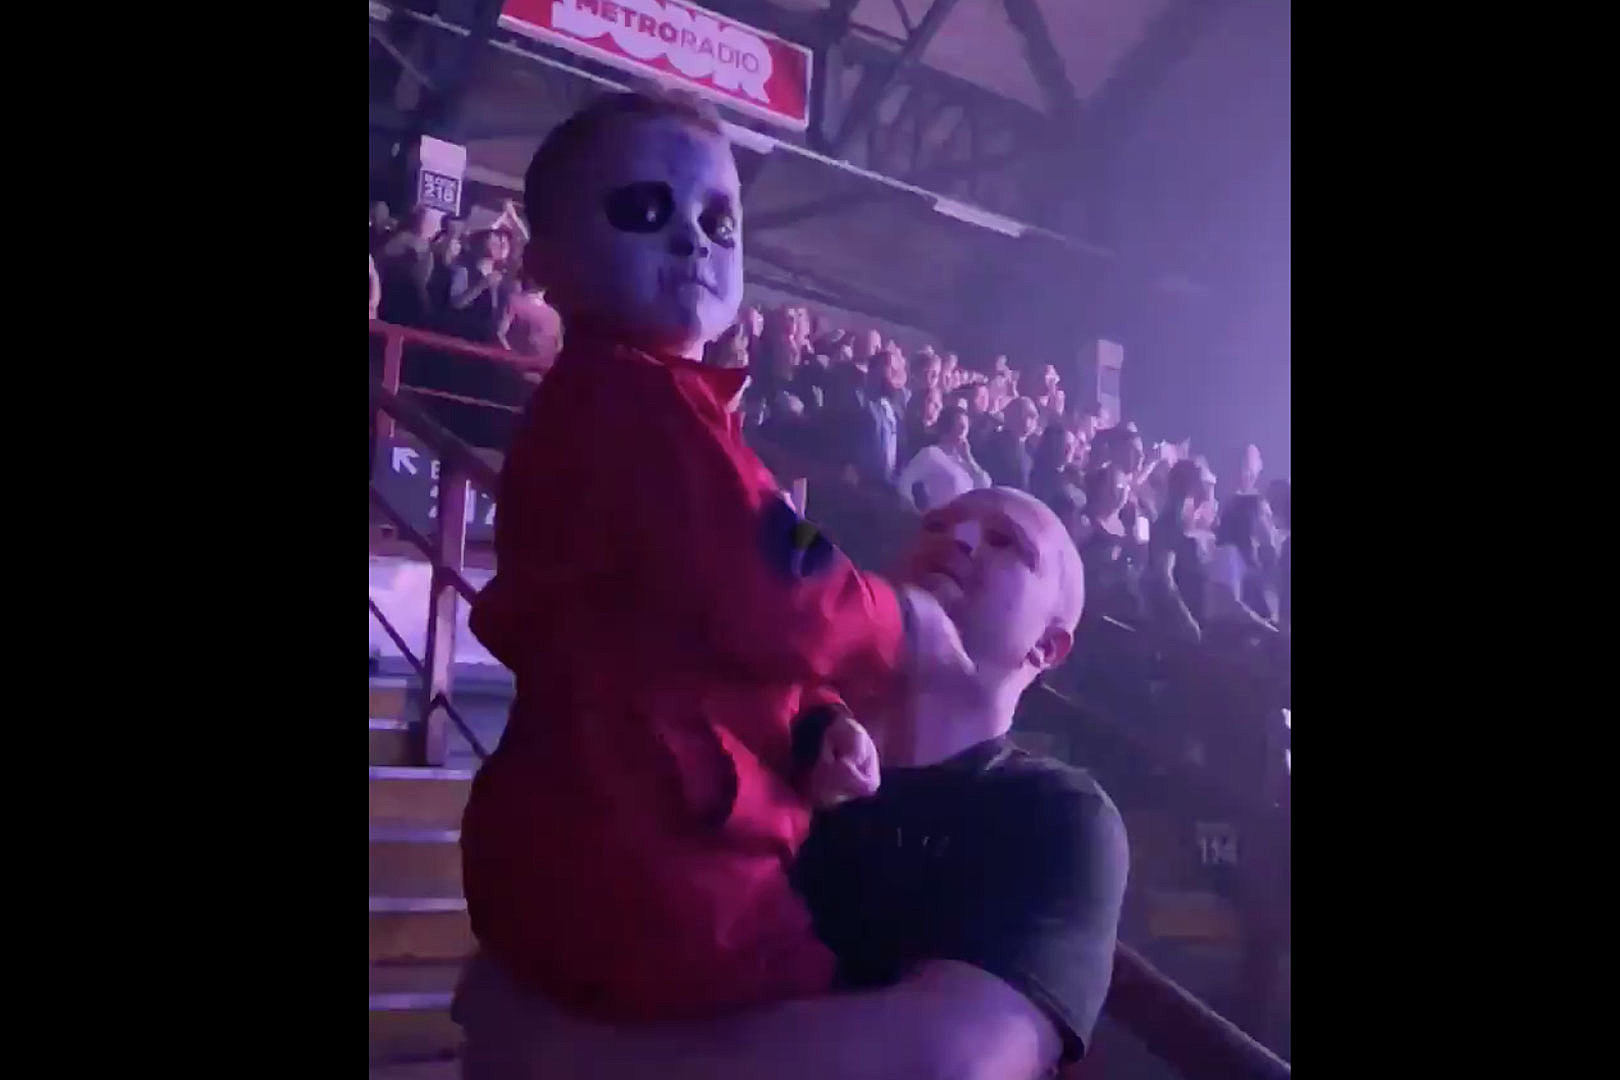 Slipknot's Jay Weinberg Shouts Out 5-Year-Old Fan's Air Drumming Skills